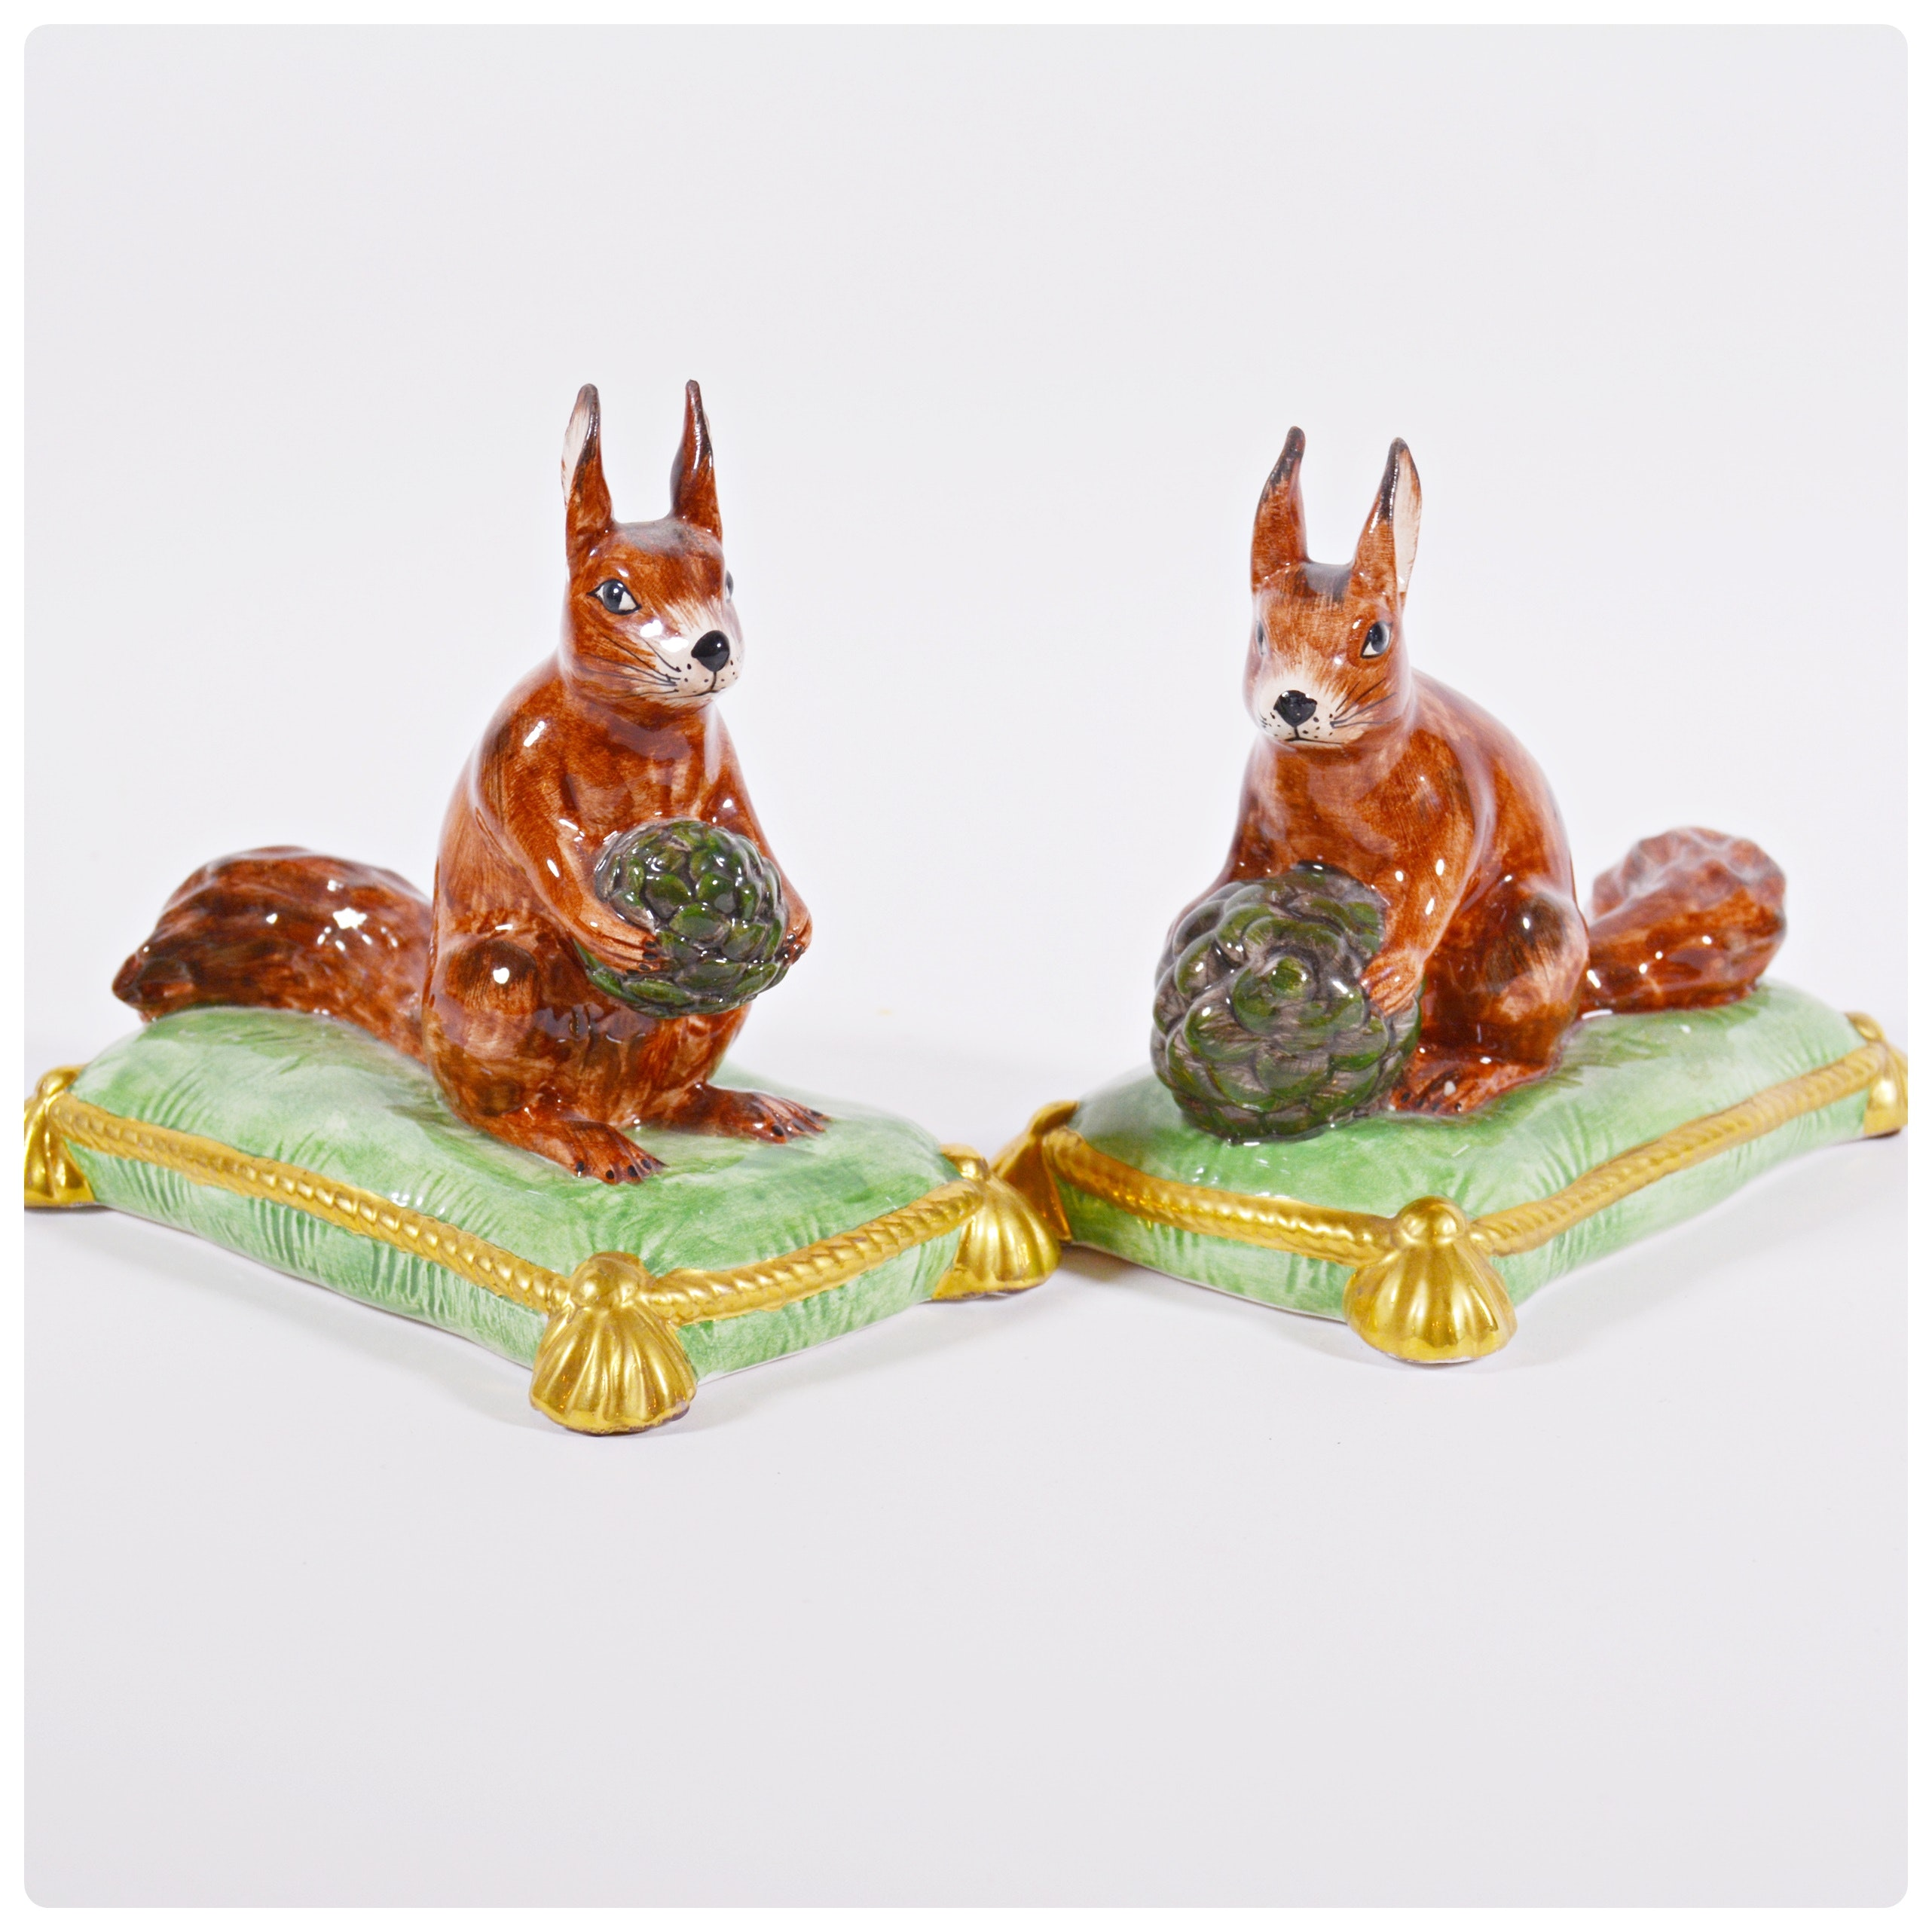 Jeanne Reed's Porcelain Squirrel Figurines